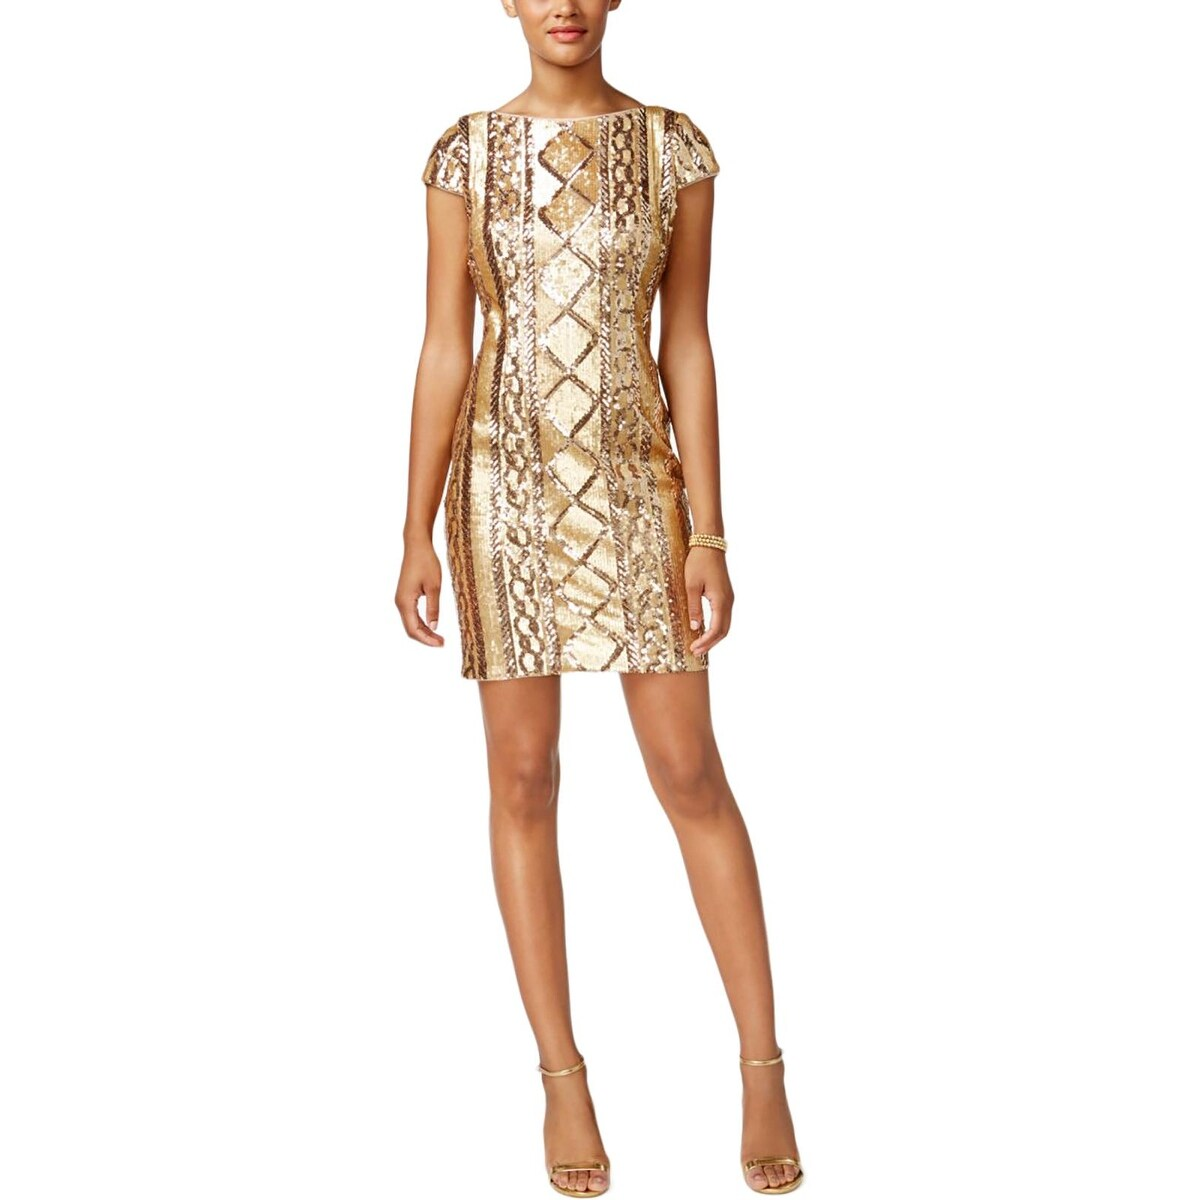 Adrianna Papell Womens Semi Formal Dress Cap Sleeve Sequin Free